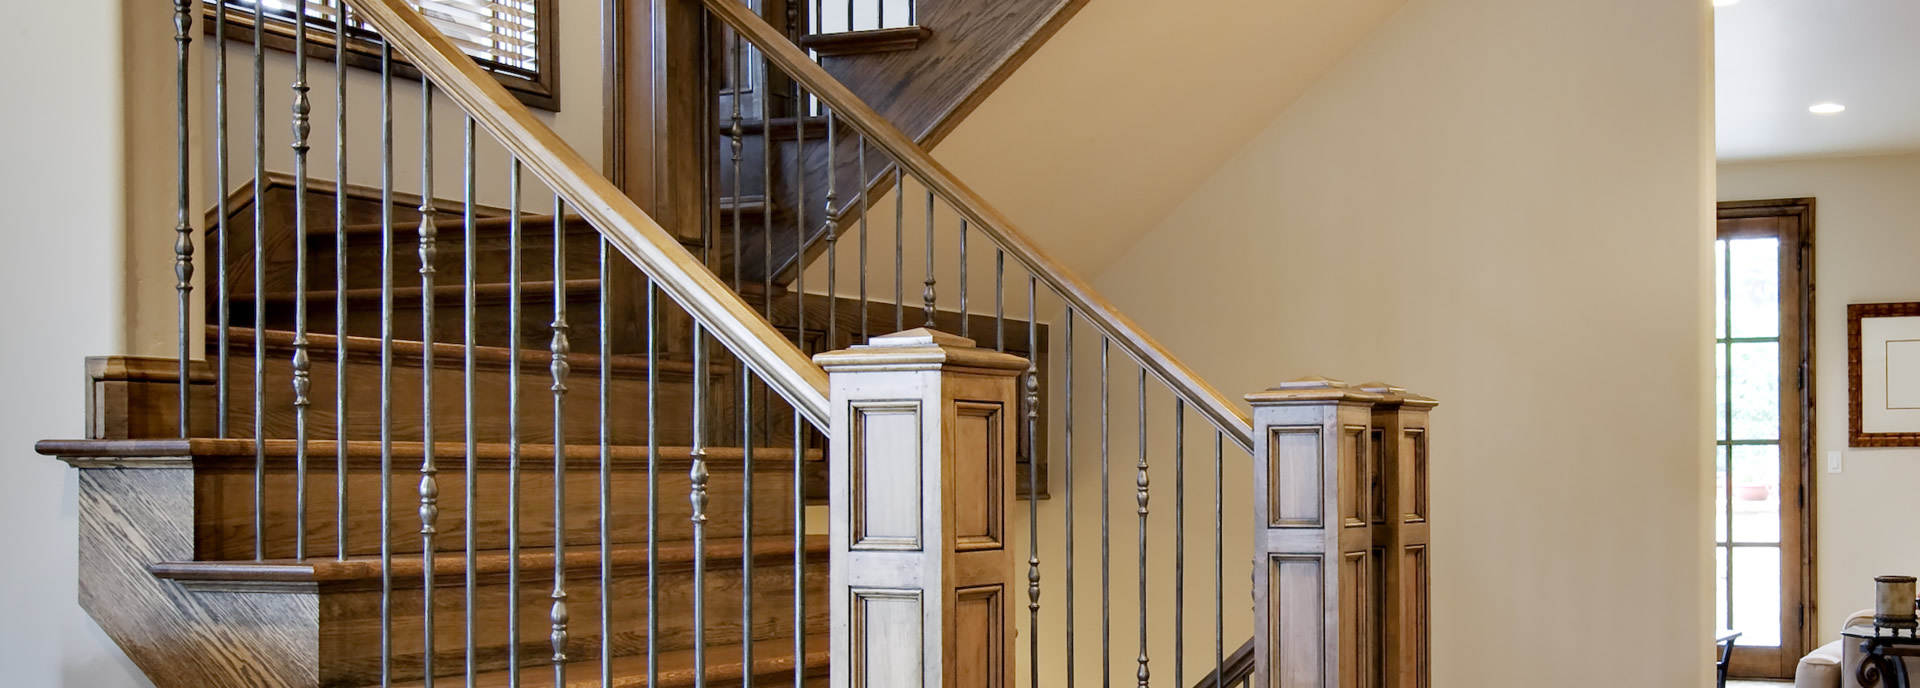 Is it Balusters or Banisters? Alpharetta, GA